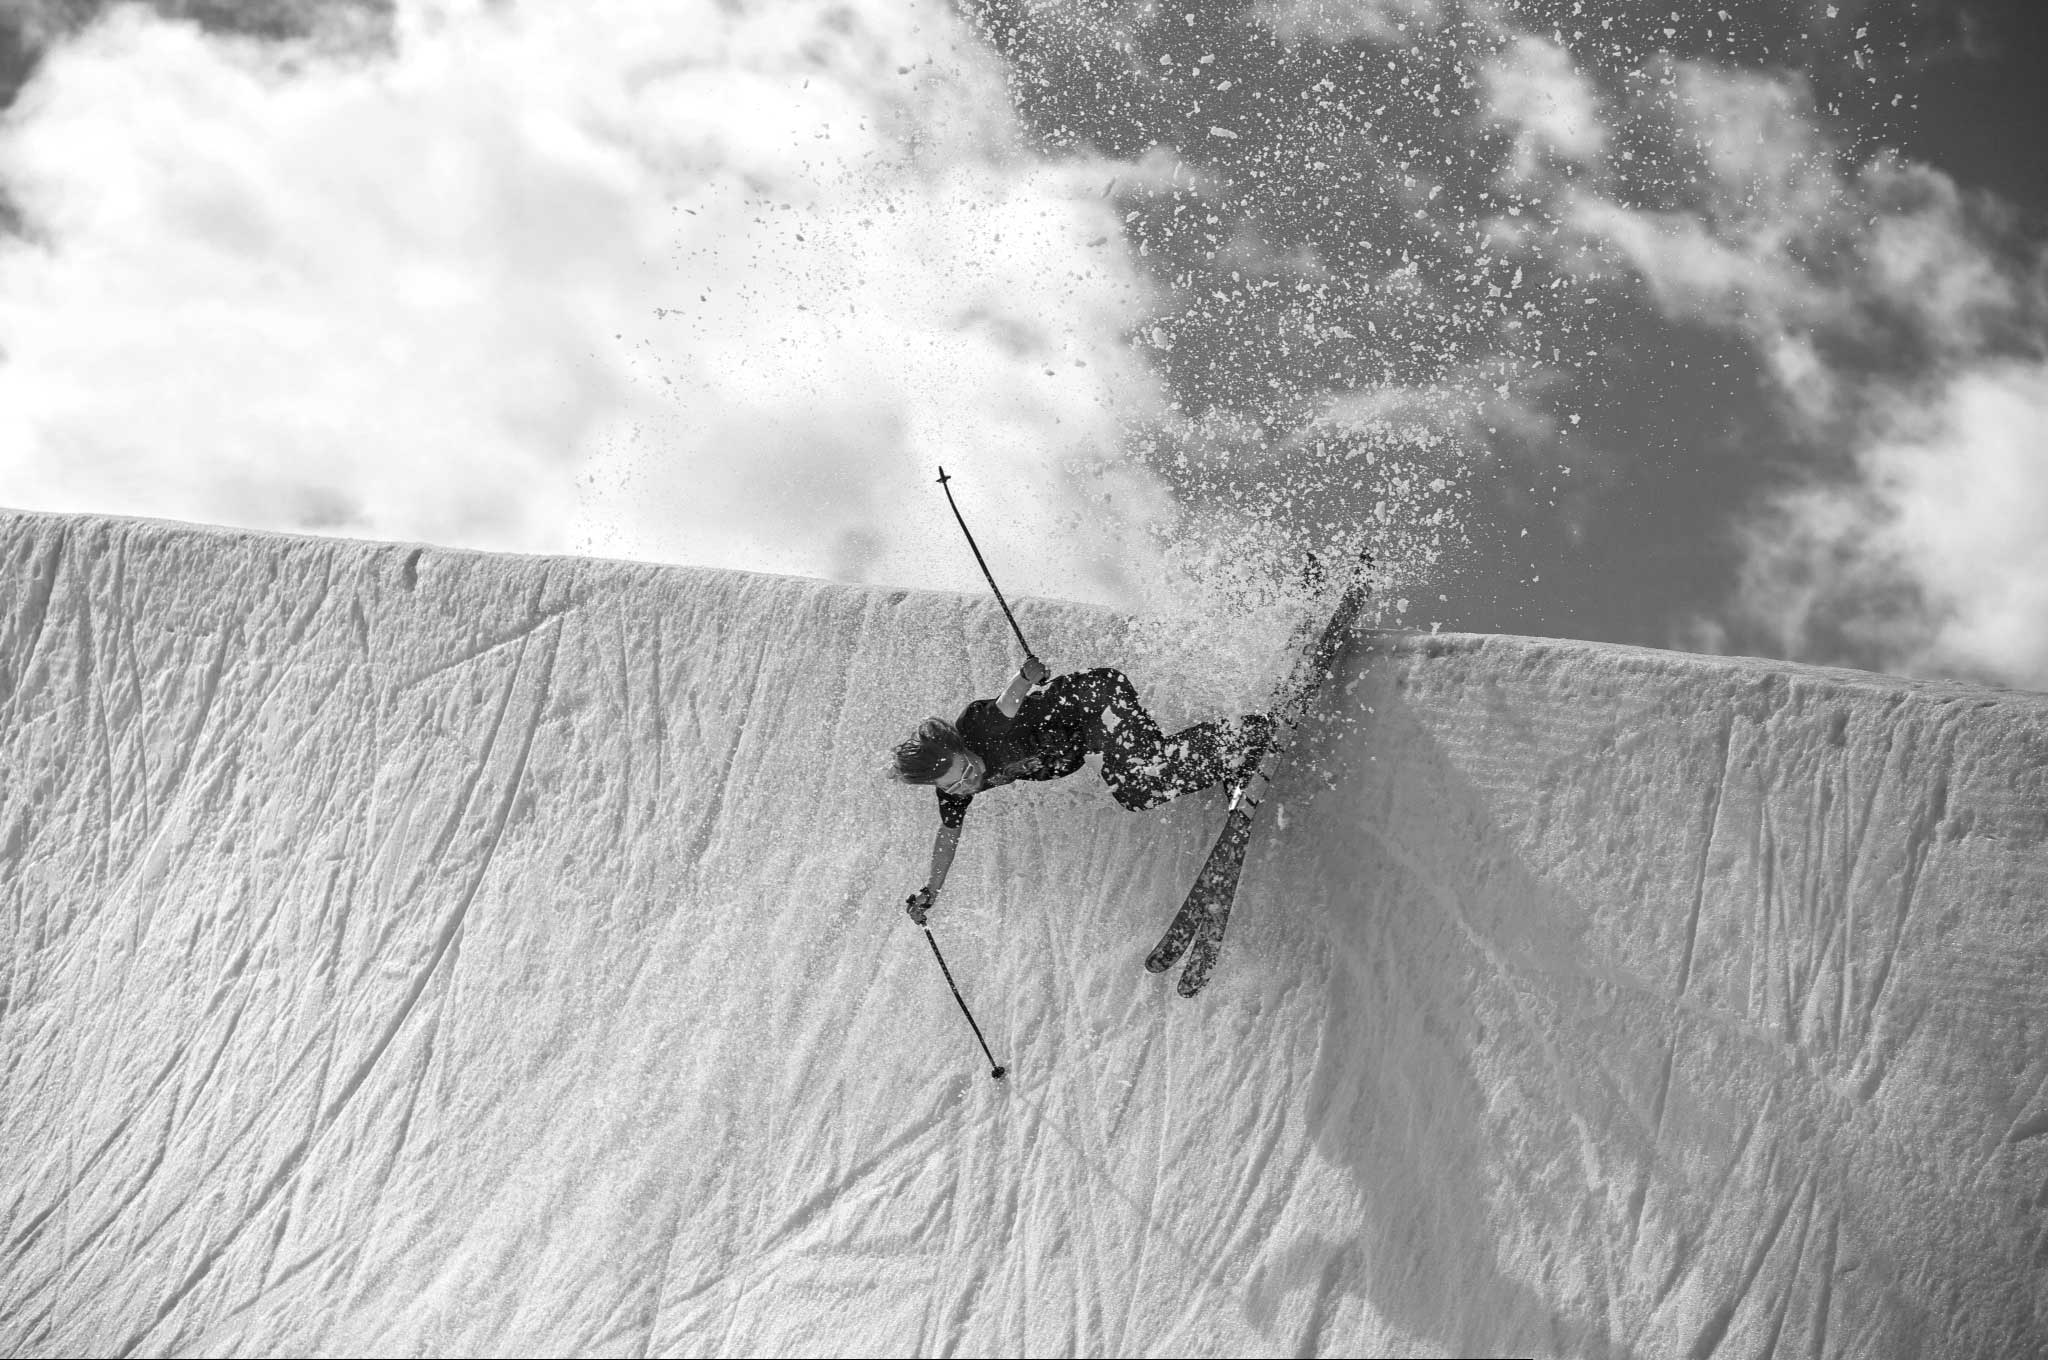 """Level 1's Freedle Coty pointed his lens on Heule last winter, bringing Heule into the Level 1 family with their film this year """"Pleasure."""" PHOTO: Dane Ulsifer"""